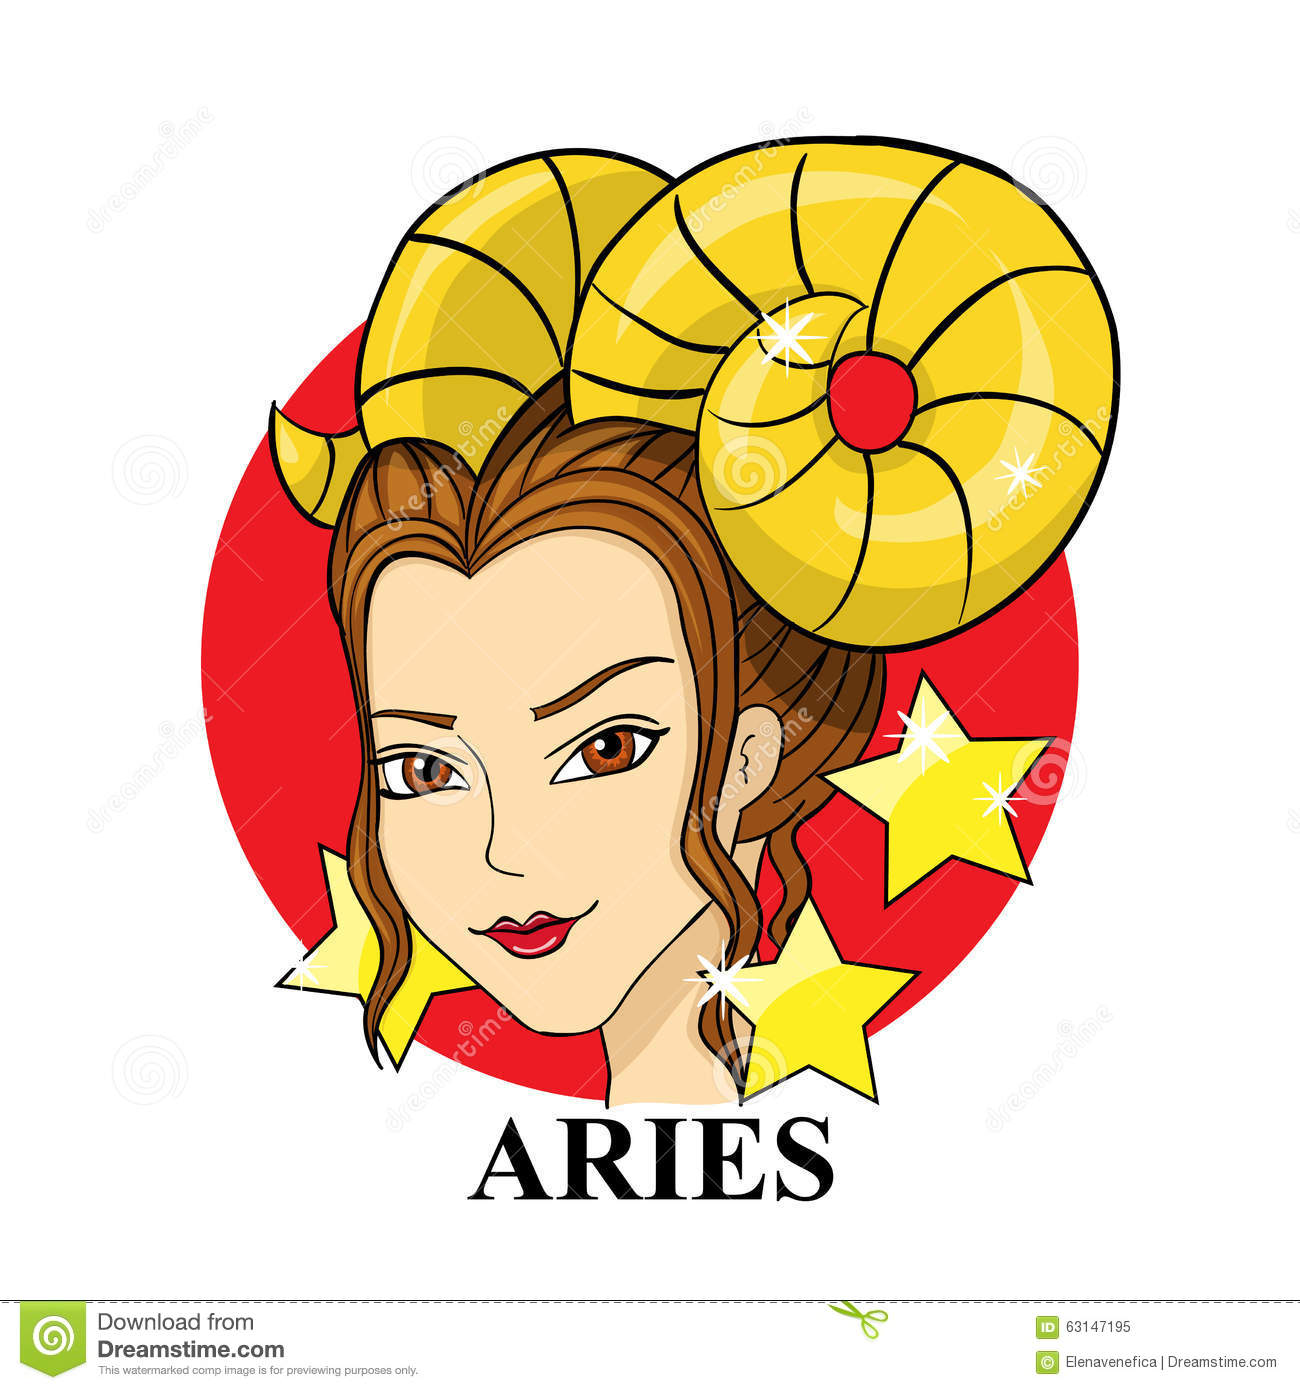 how to draw the aries zodiac sign